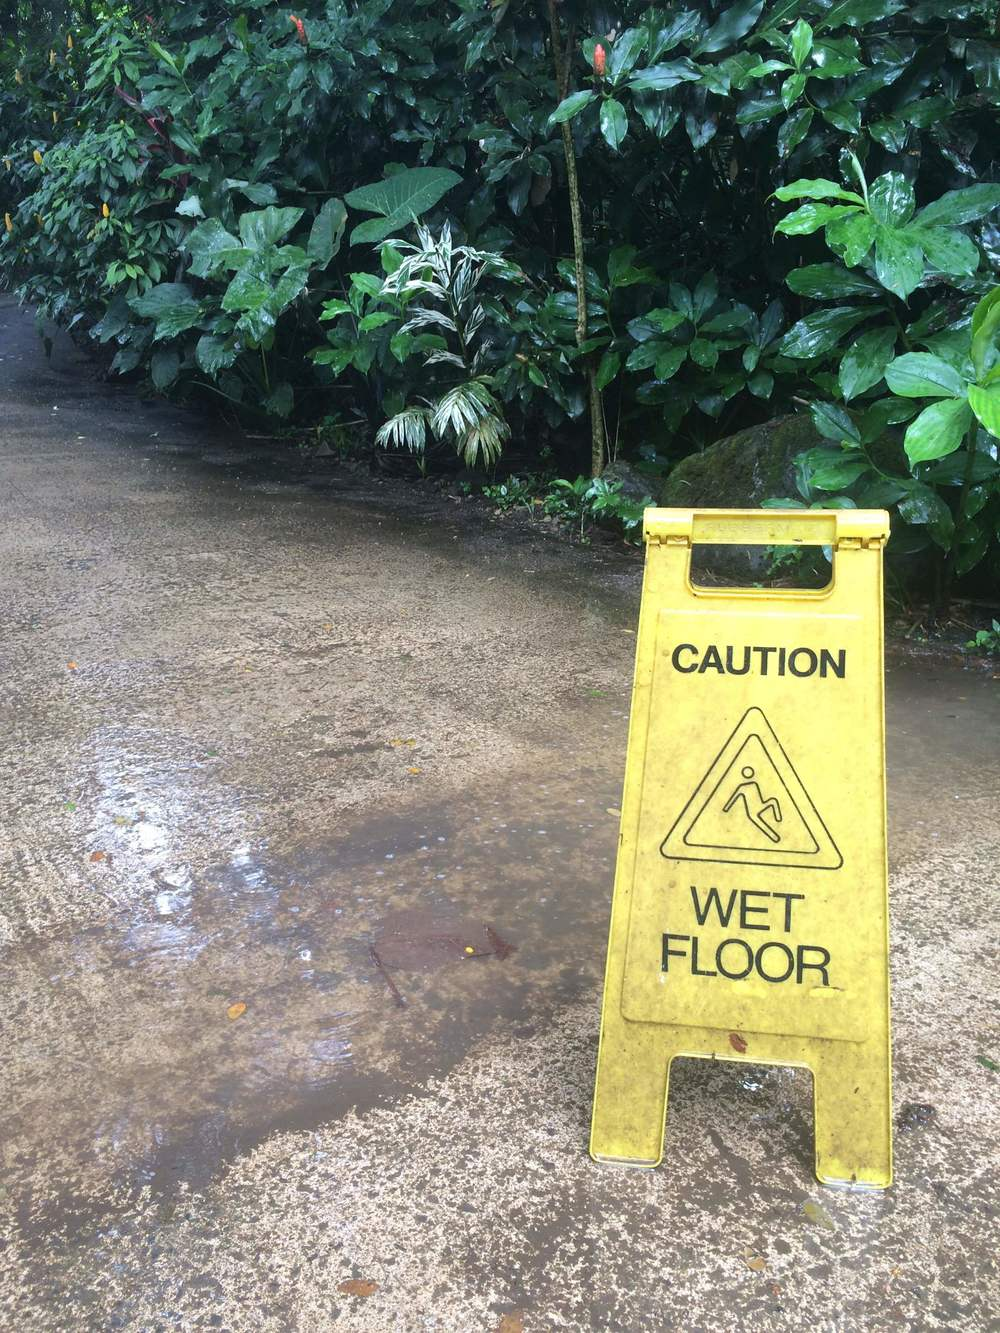 You know you're in for a tough hike when they warn you about the slipper concrete.